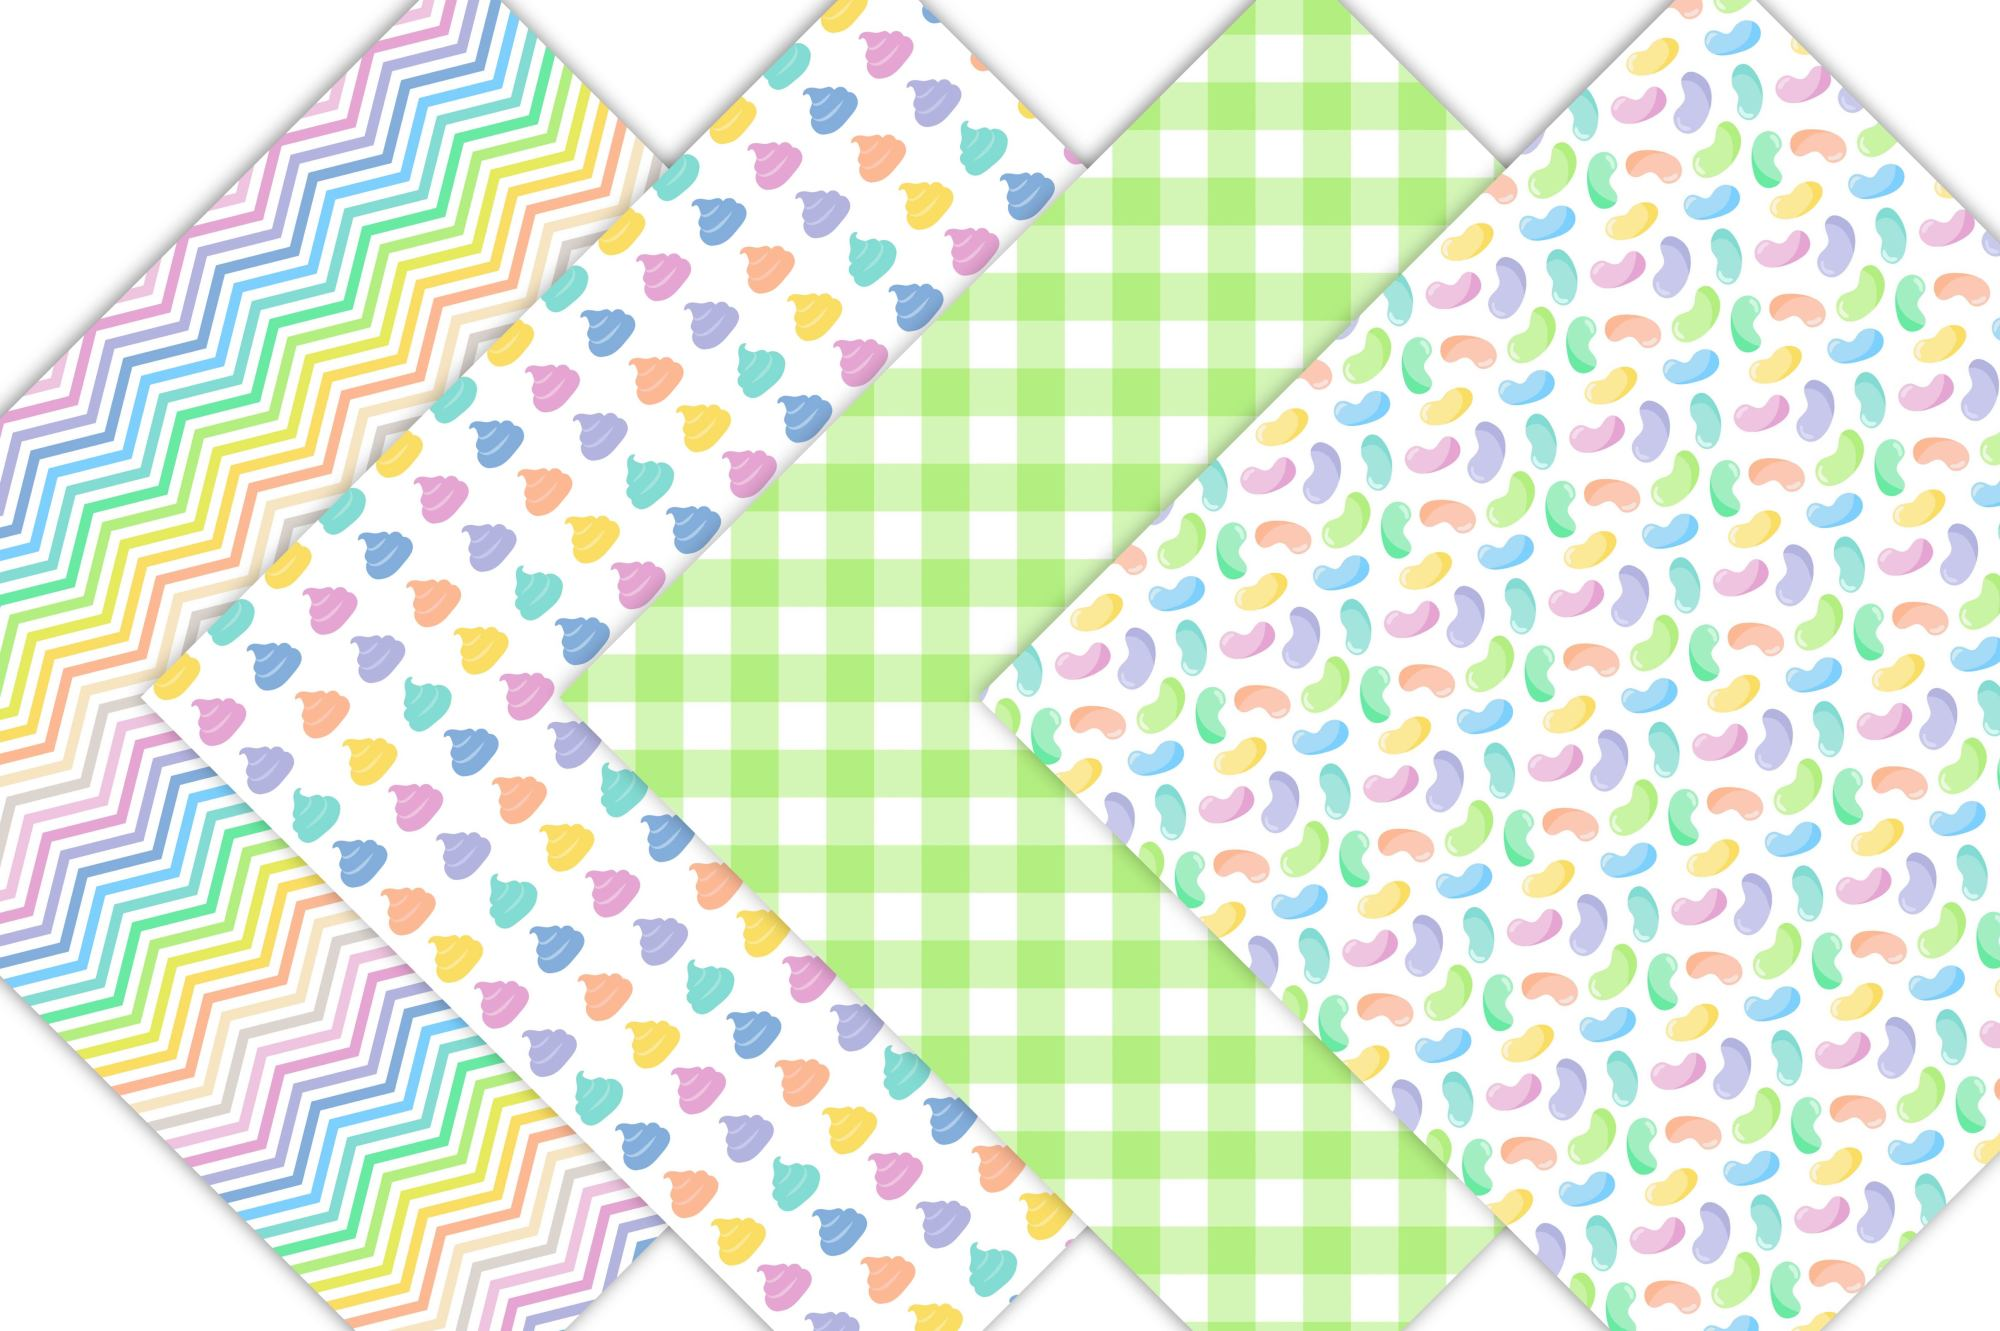 Candy Pattern Backgrounds example image 5